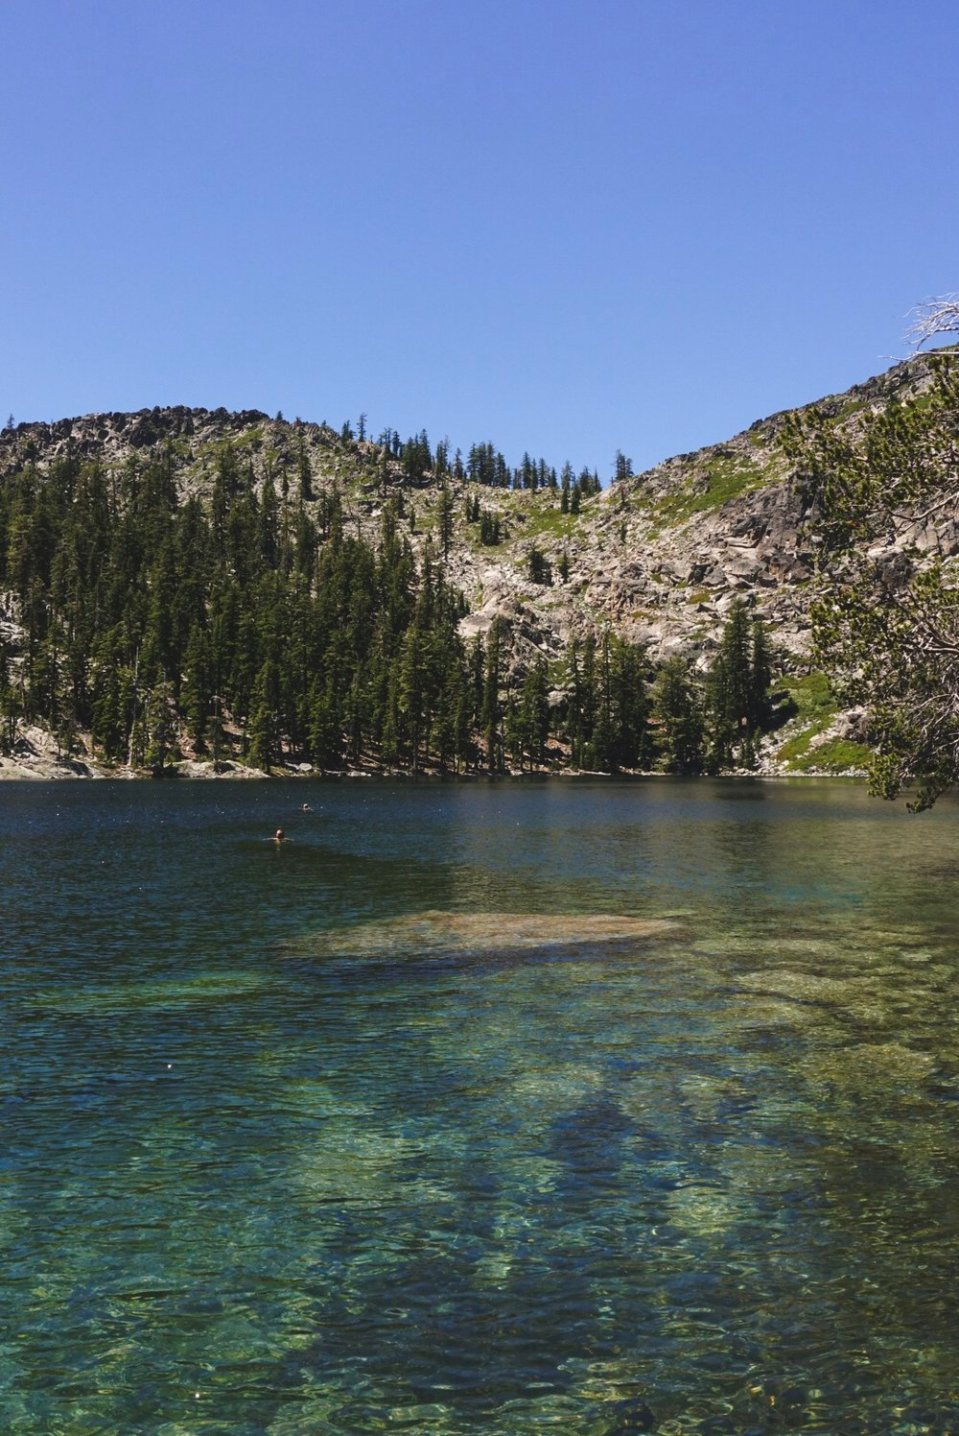 Porcupine Lake, one of the best swims in the northern hemisphere. Source: me.